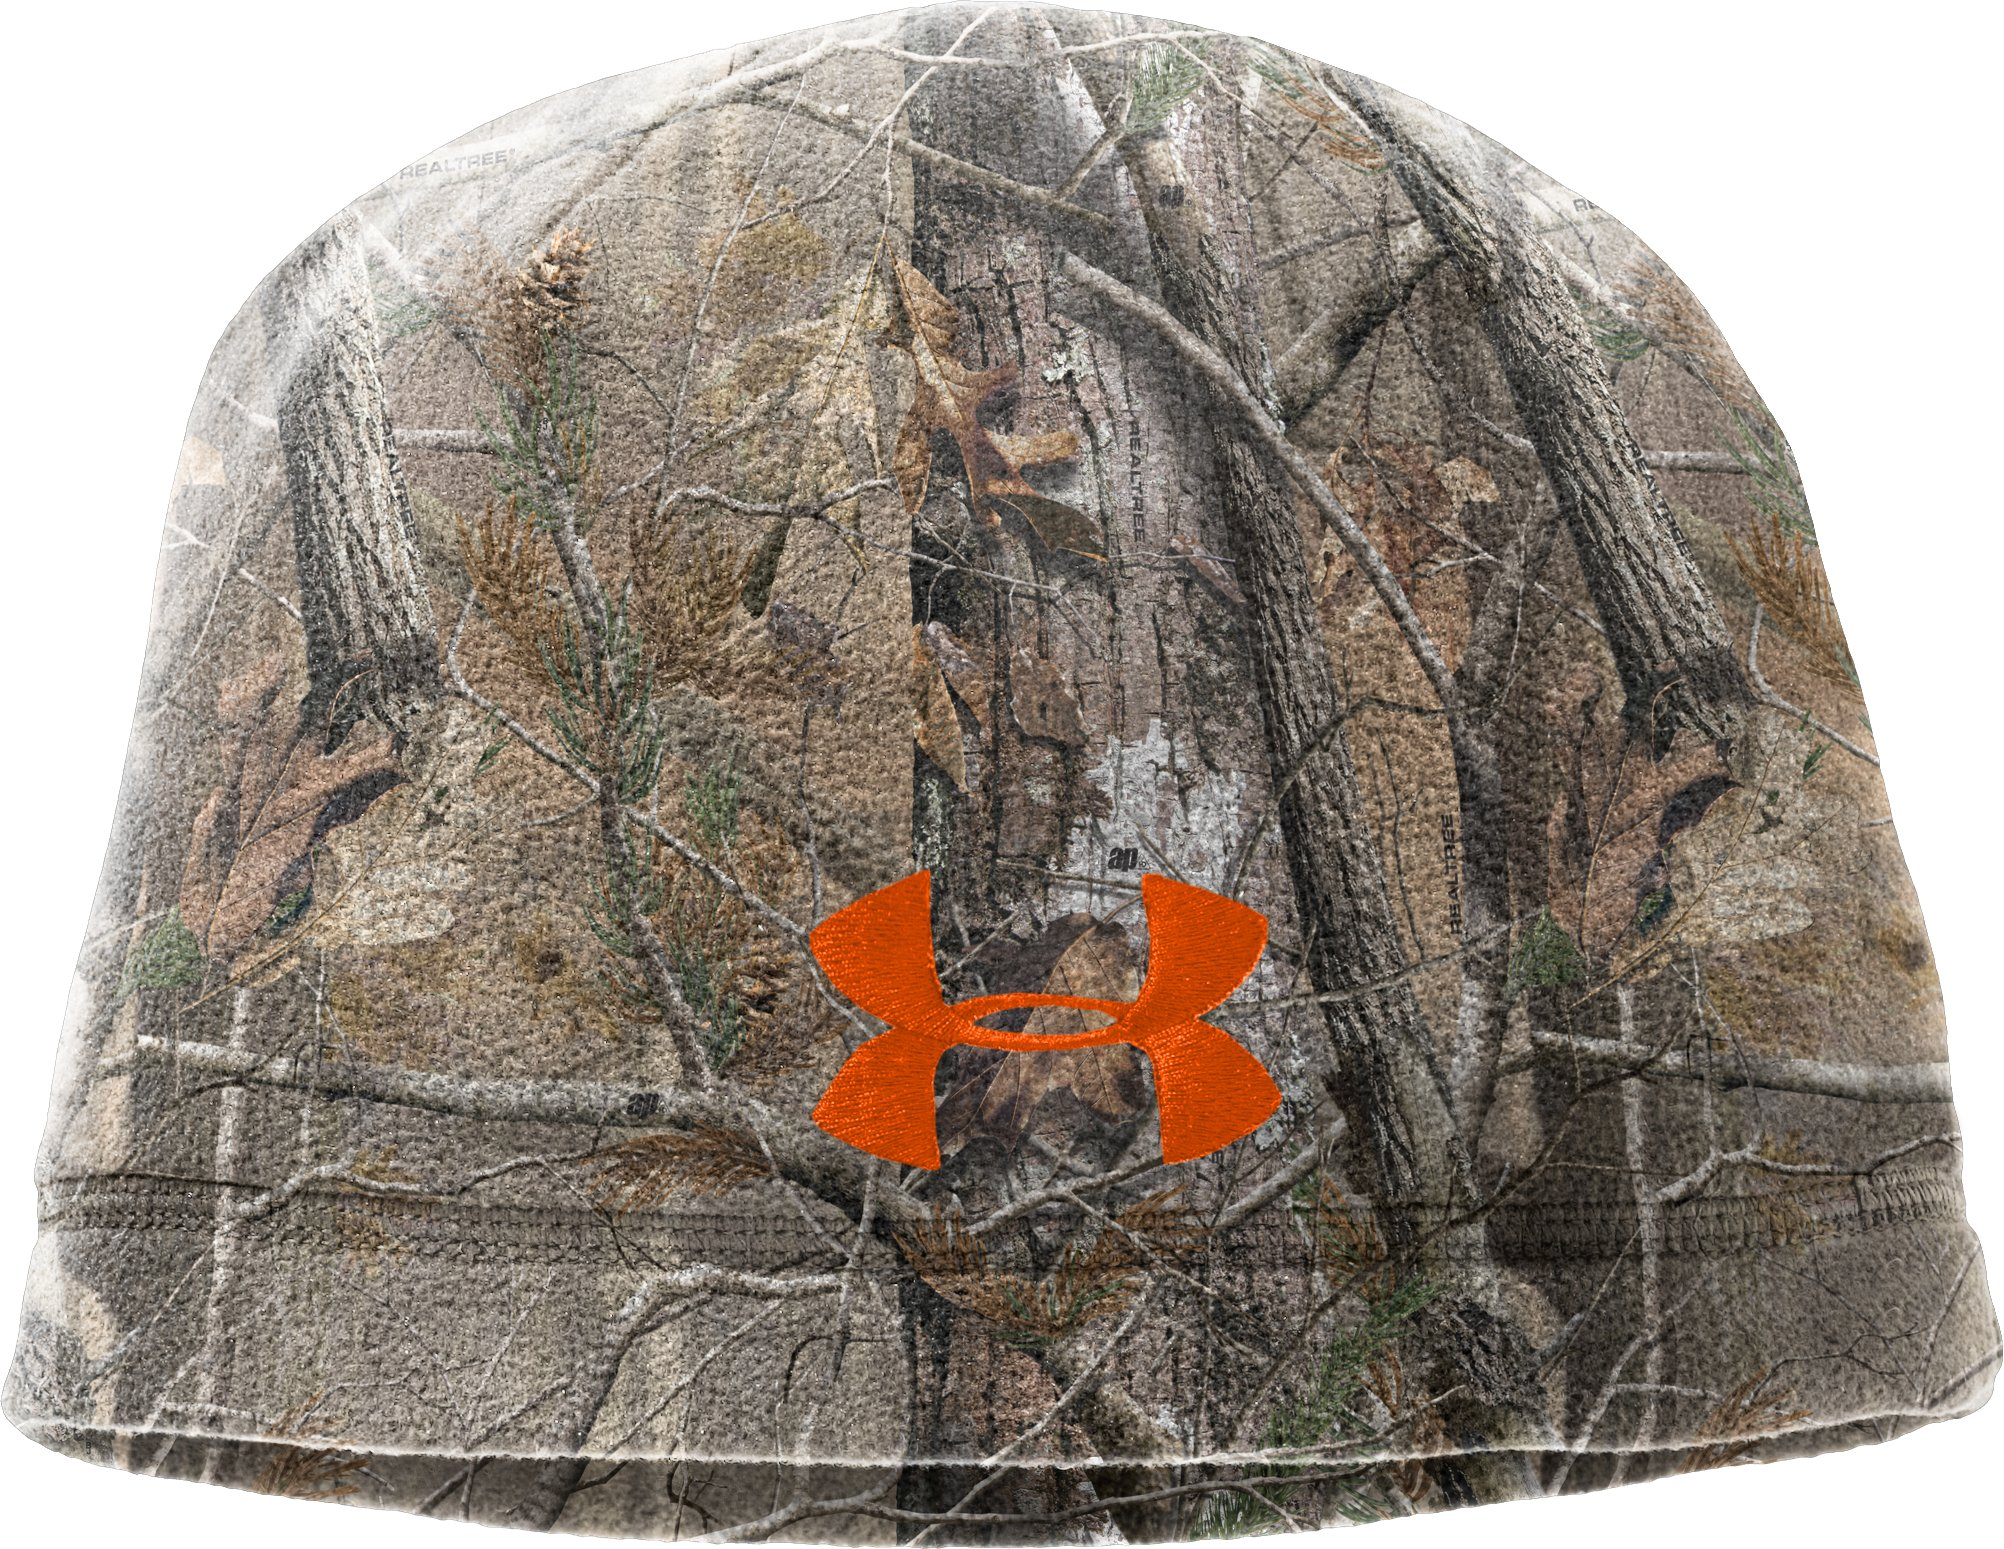 Men's Fleece Beanie, Realtree AP